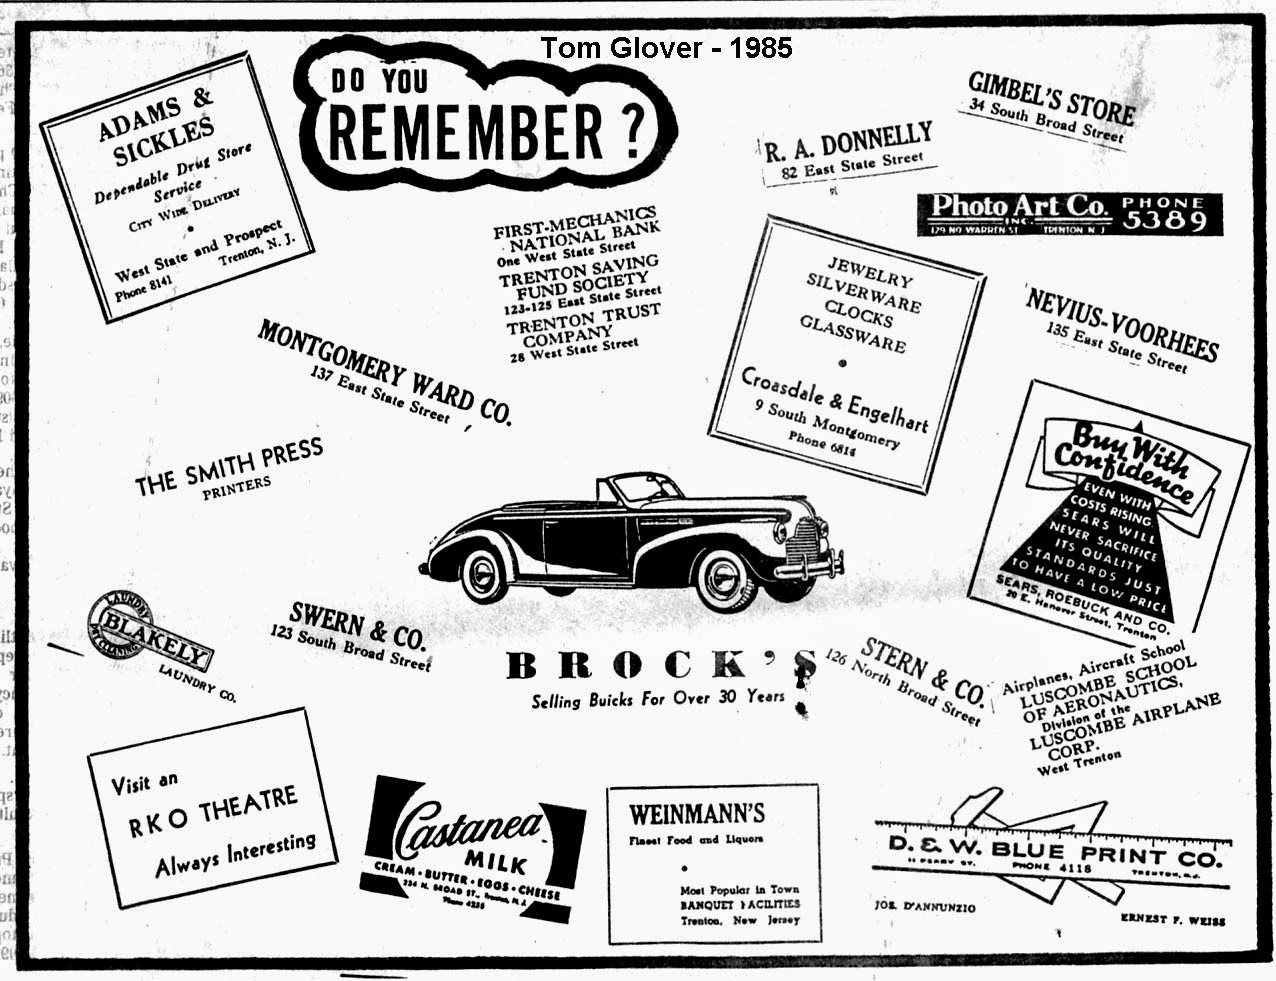 1952 packard 200 deluxe wiring diagram database Packard Crest tom glover s hamilton library scrapbook local history with a 1952 packard clipper 1952 packard 200 deluxe